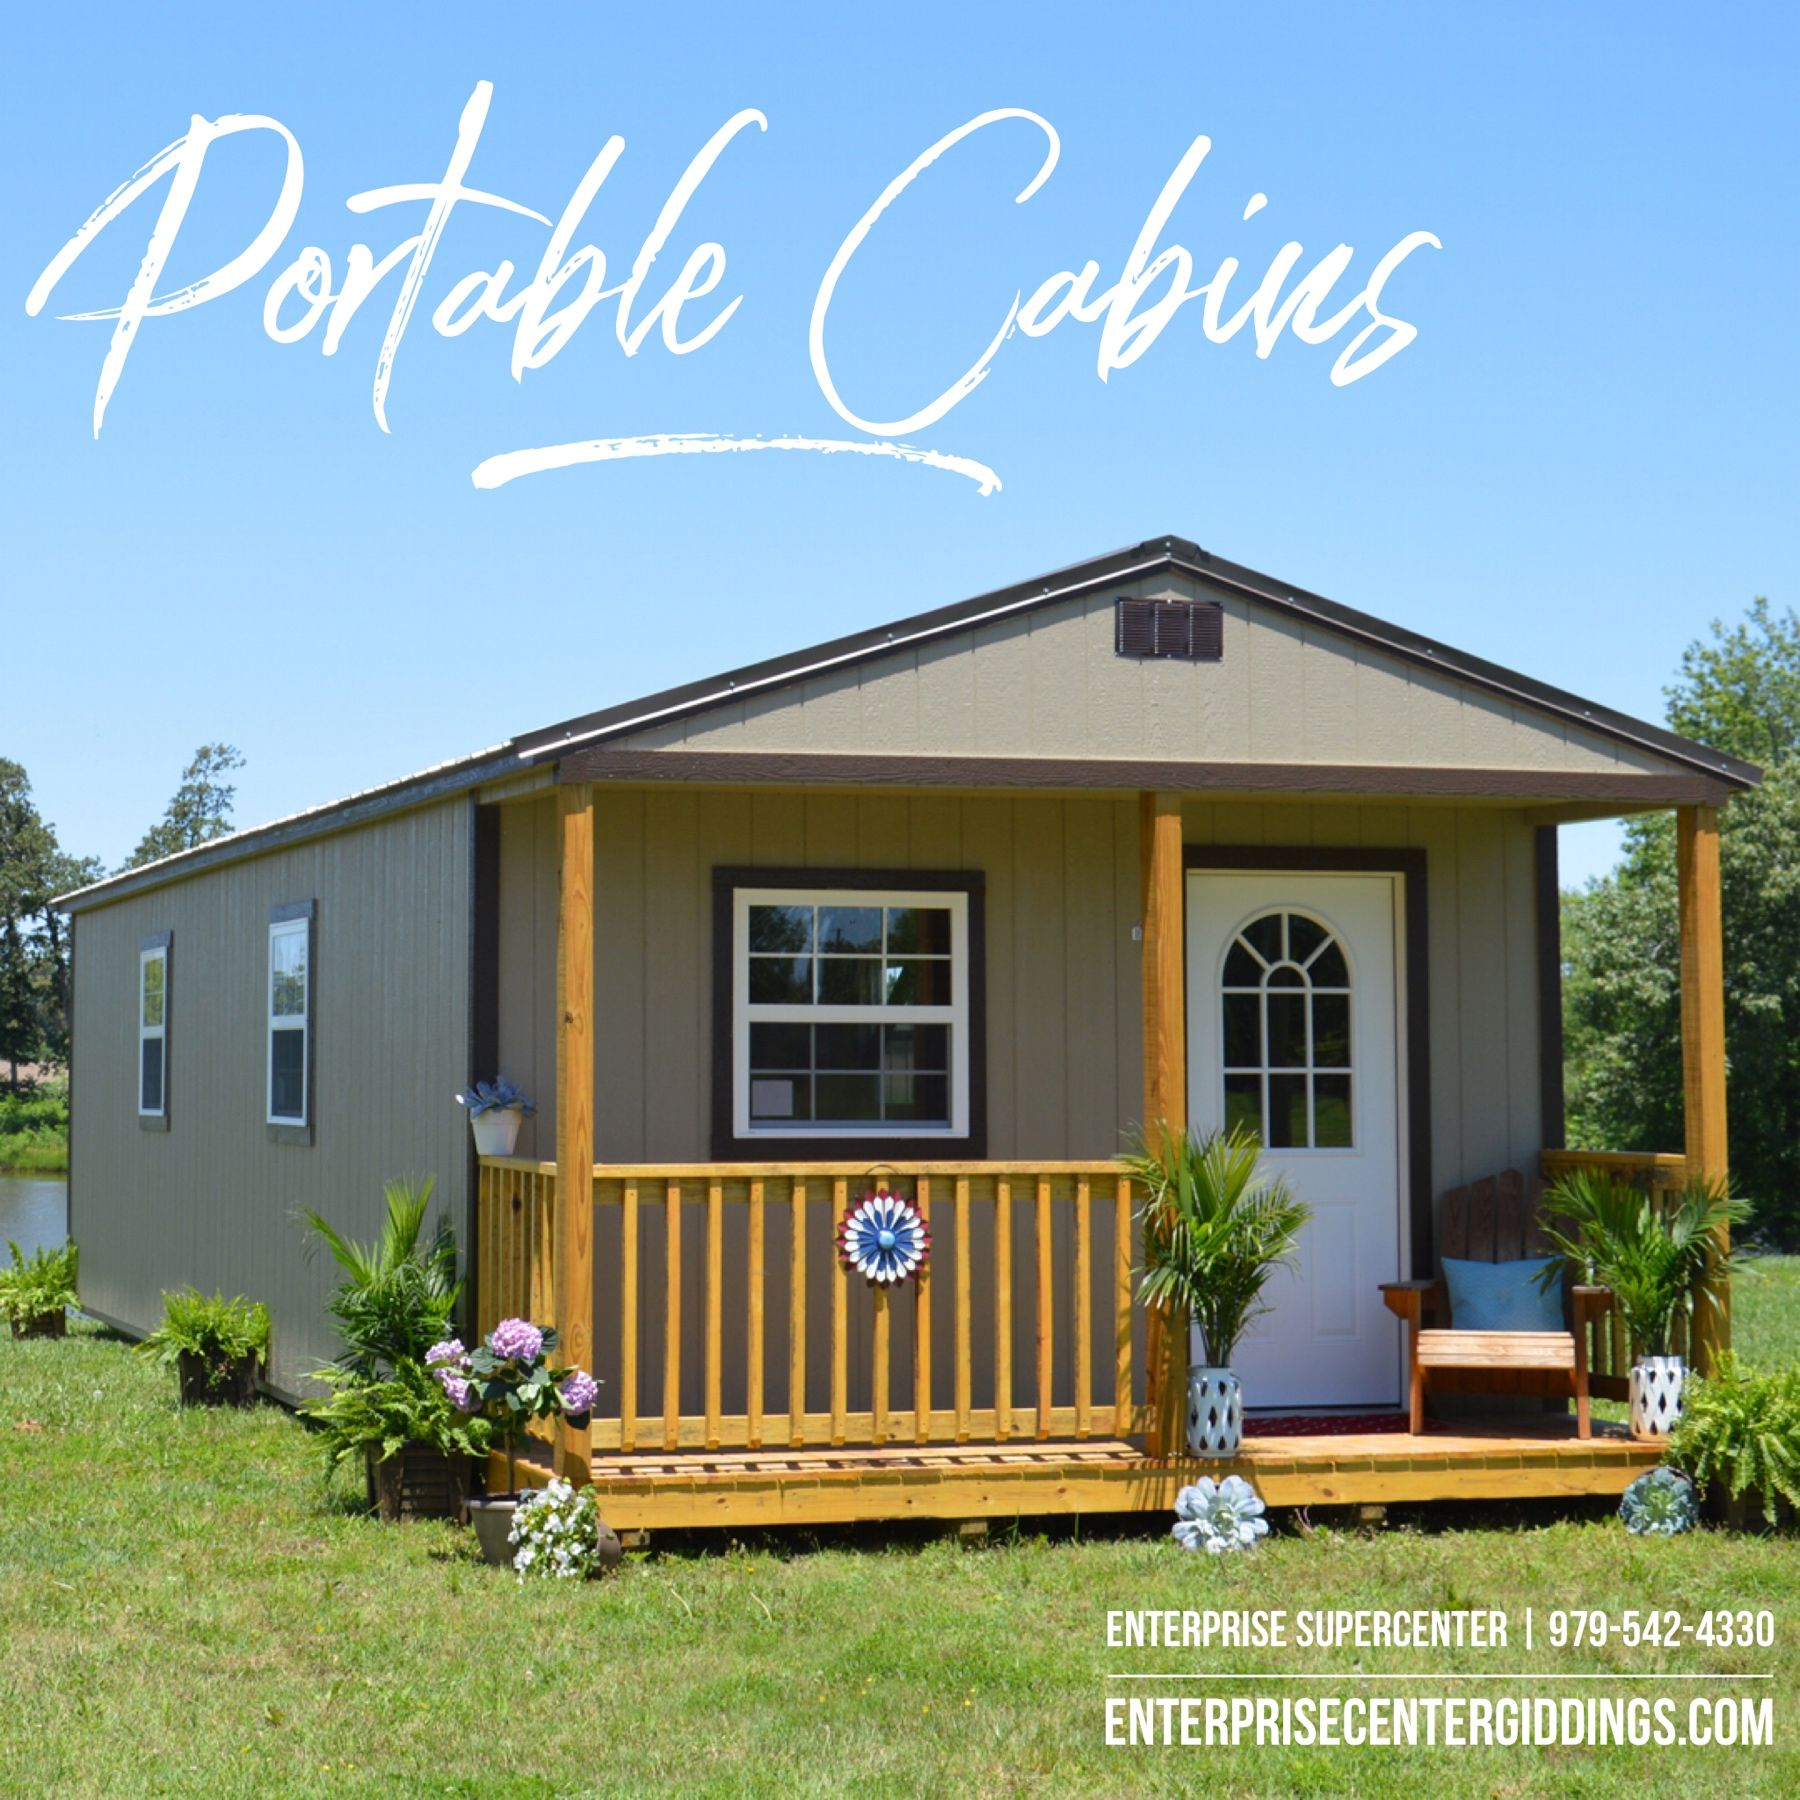 Enterprise Supercenter Offers The Derksen Portable Cabin Numerous Urethane And Painted Exterior And Roofing Portable Cabins Portable Buildings Getaway Cabins